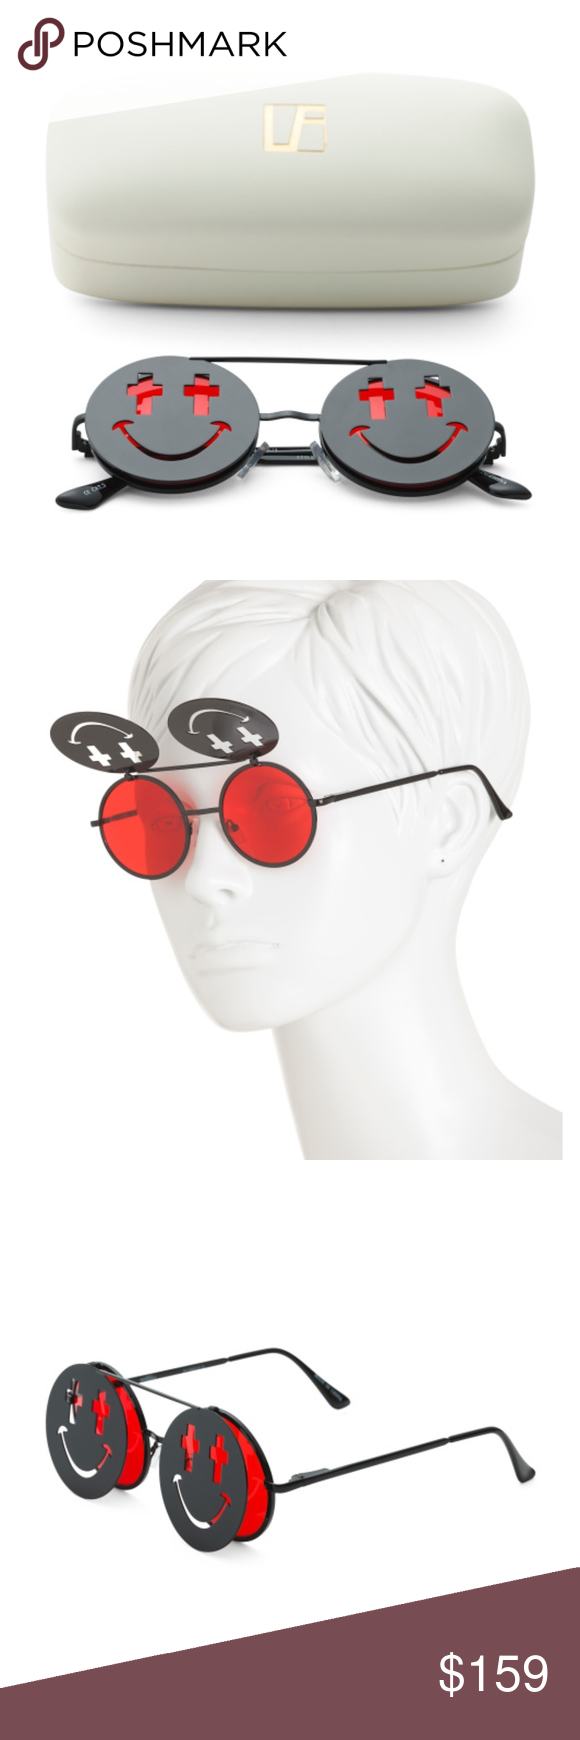 JEREMY SCOTT x LINDA FARROW Sunglasses Smile Clip Brand